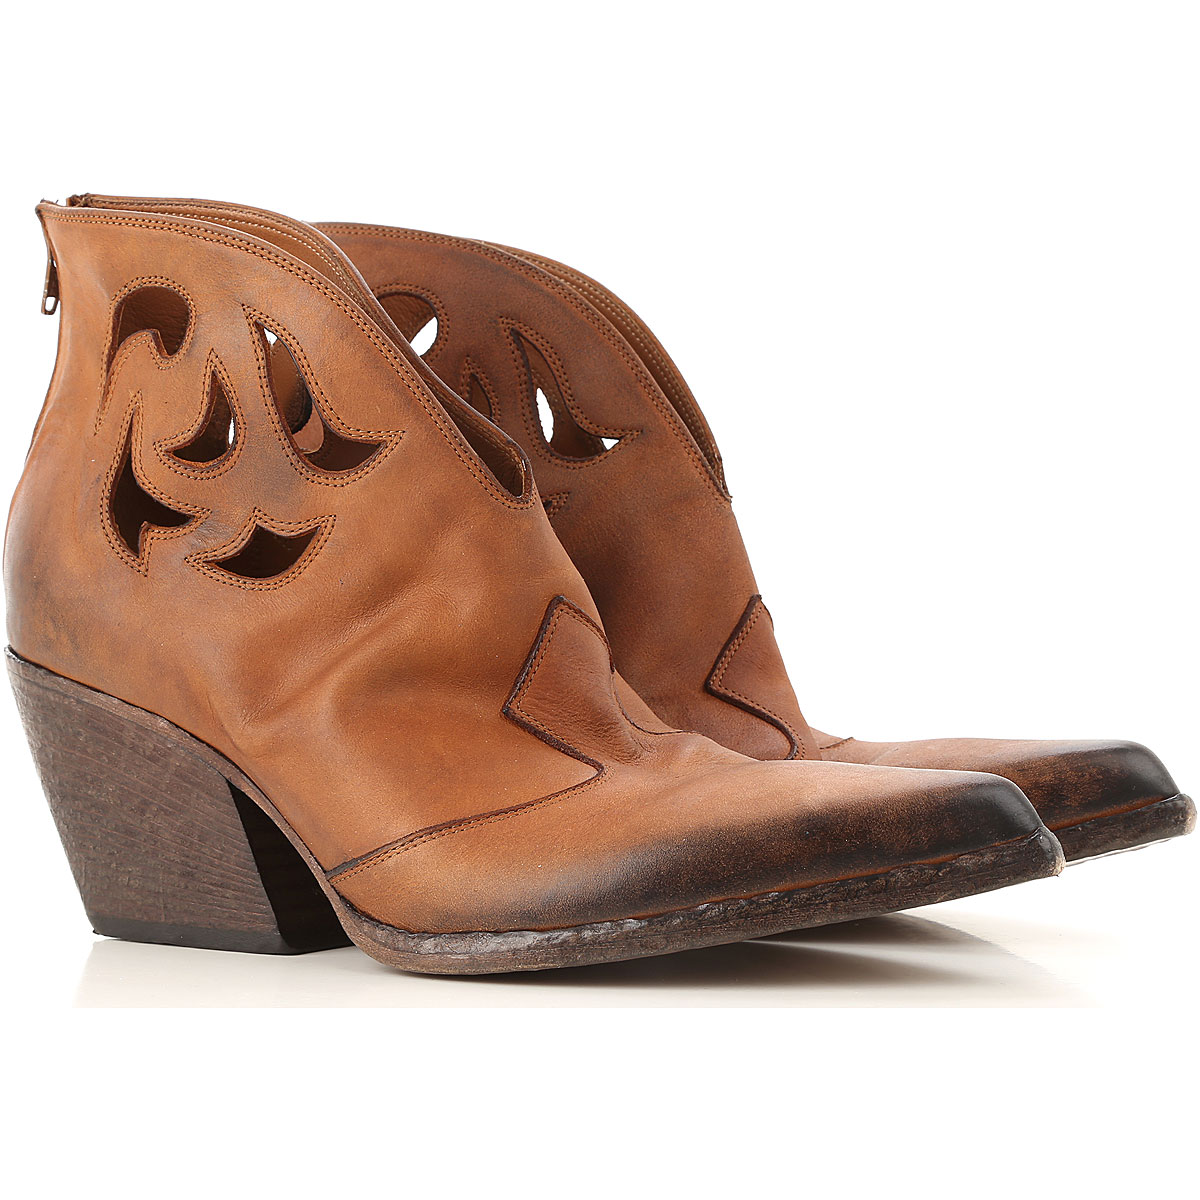 Elena Iachi Boots for Women, Booties On Sale, Cork, Leather, 2019, 8 9